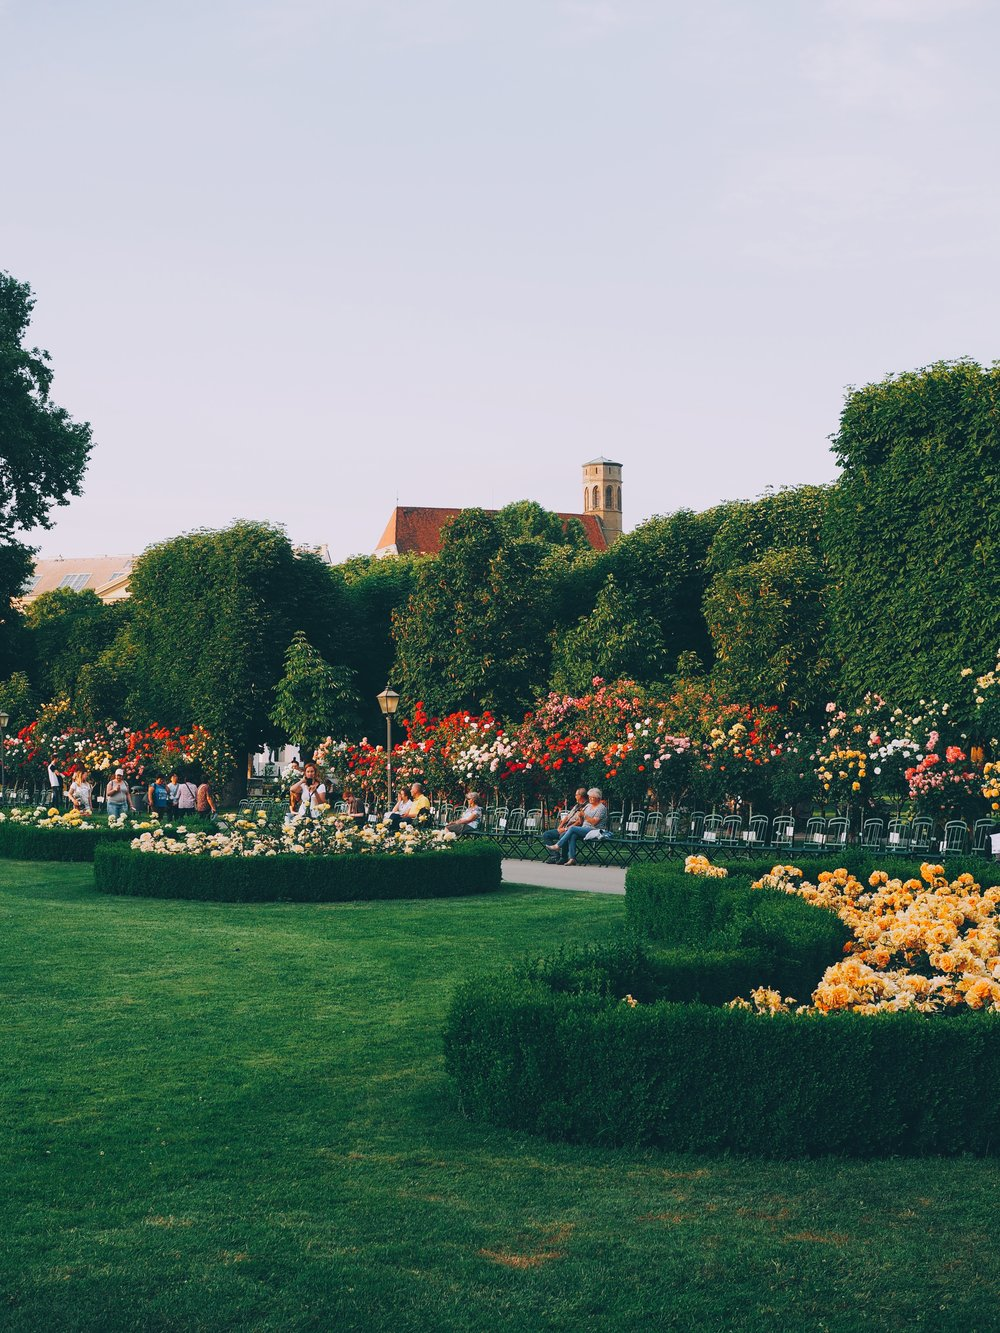 Rose garden in the Volksgarten